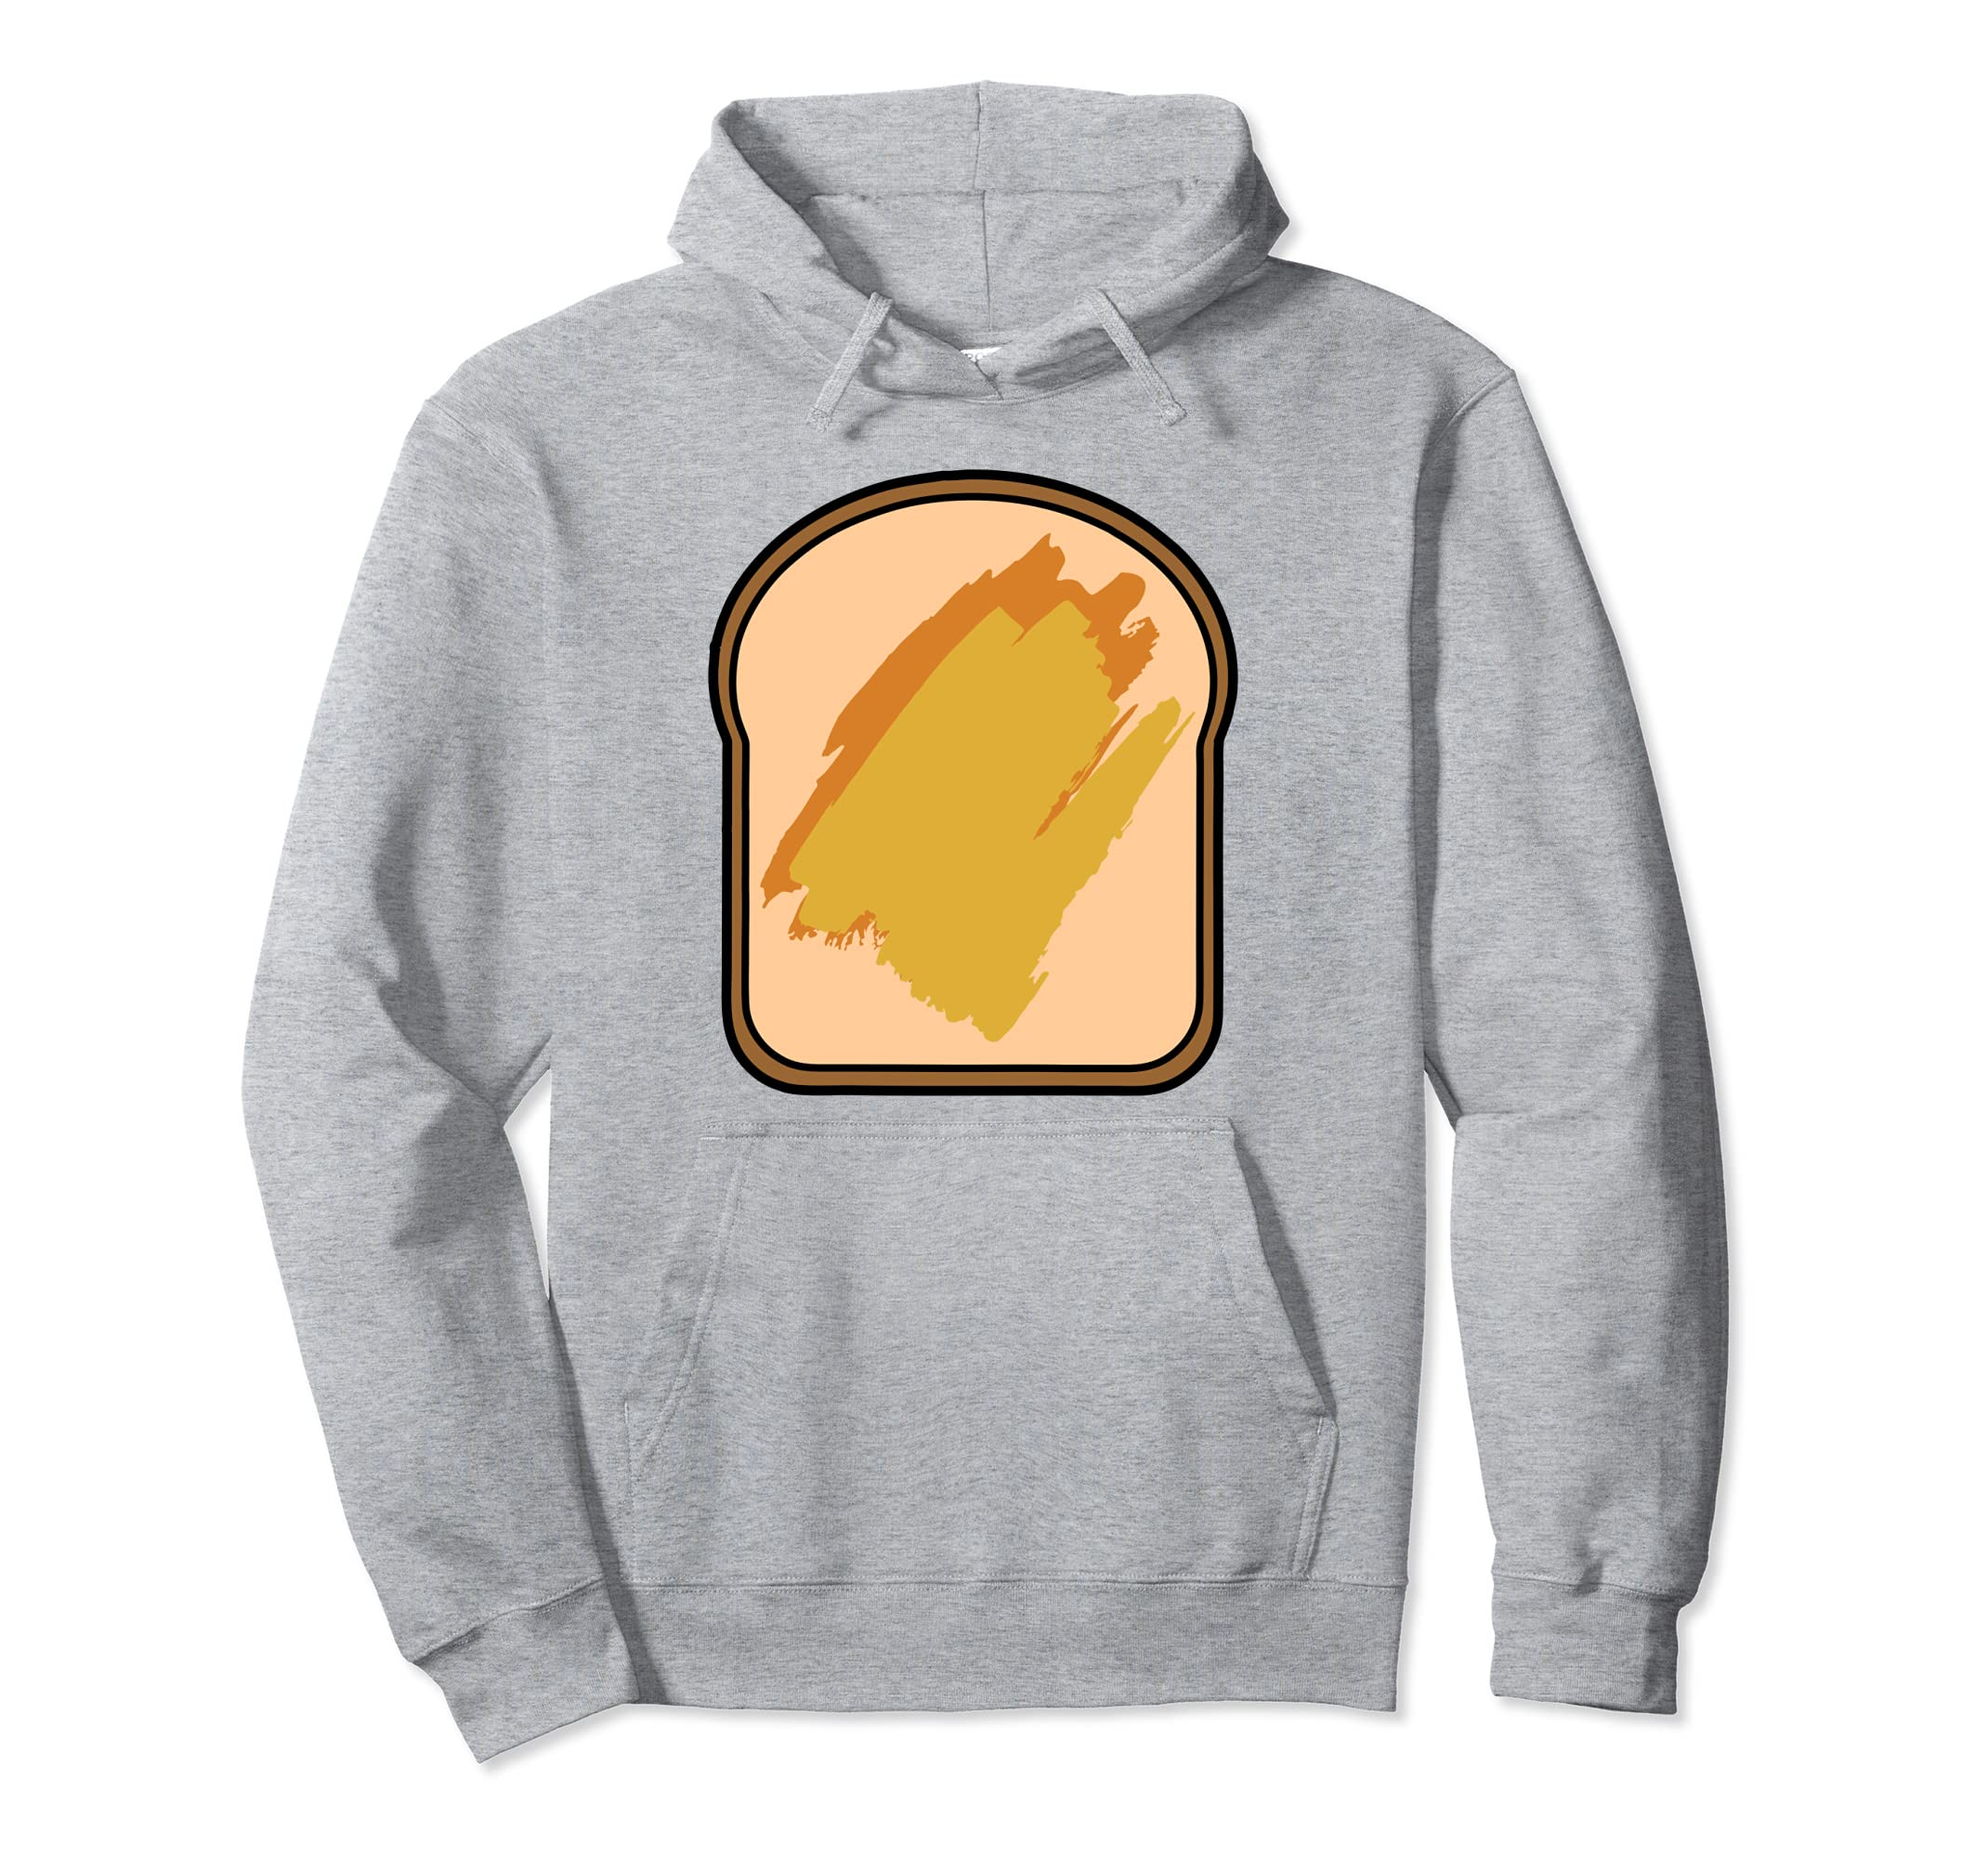 Halloween Hoodie Peanut Butter Clothes for Couples-ANZ